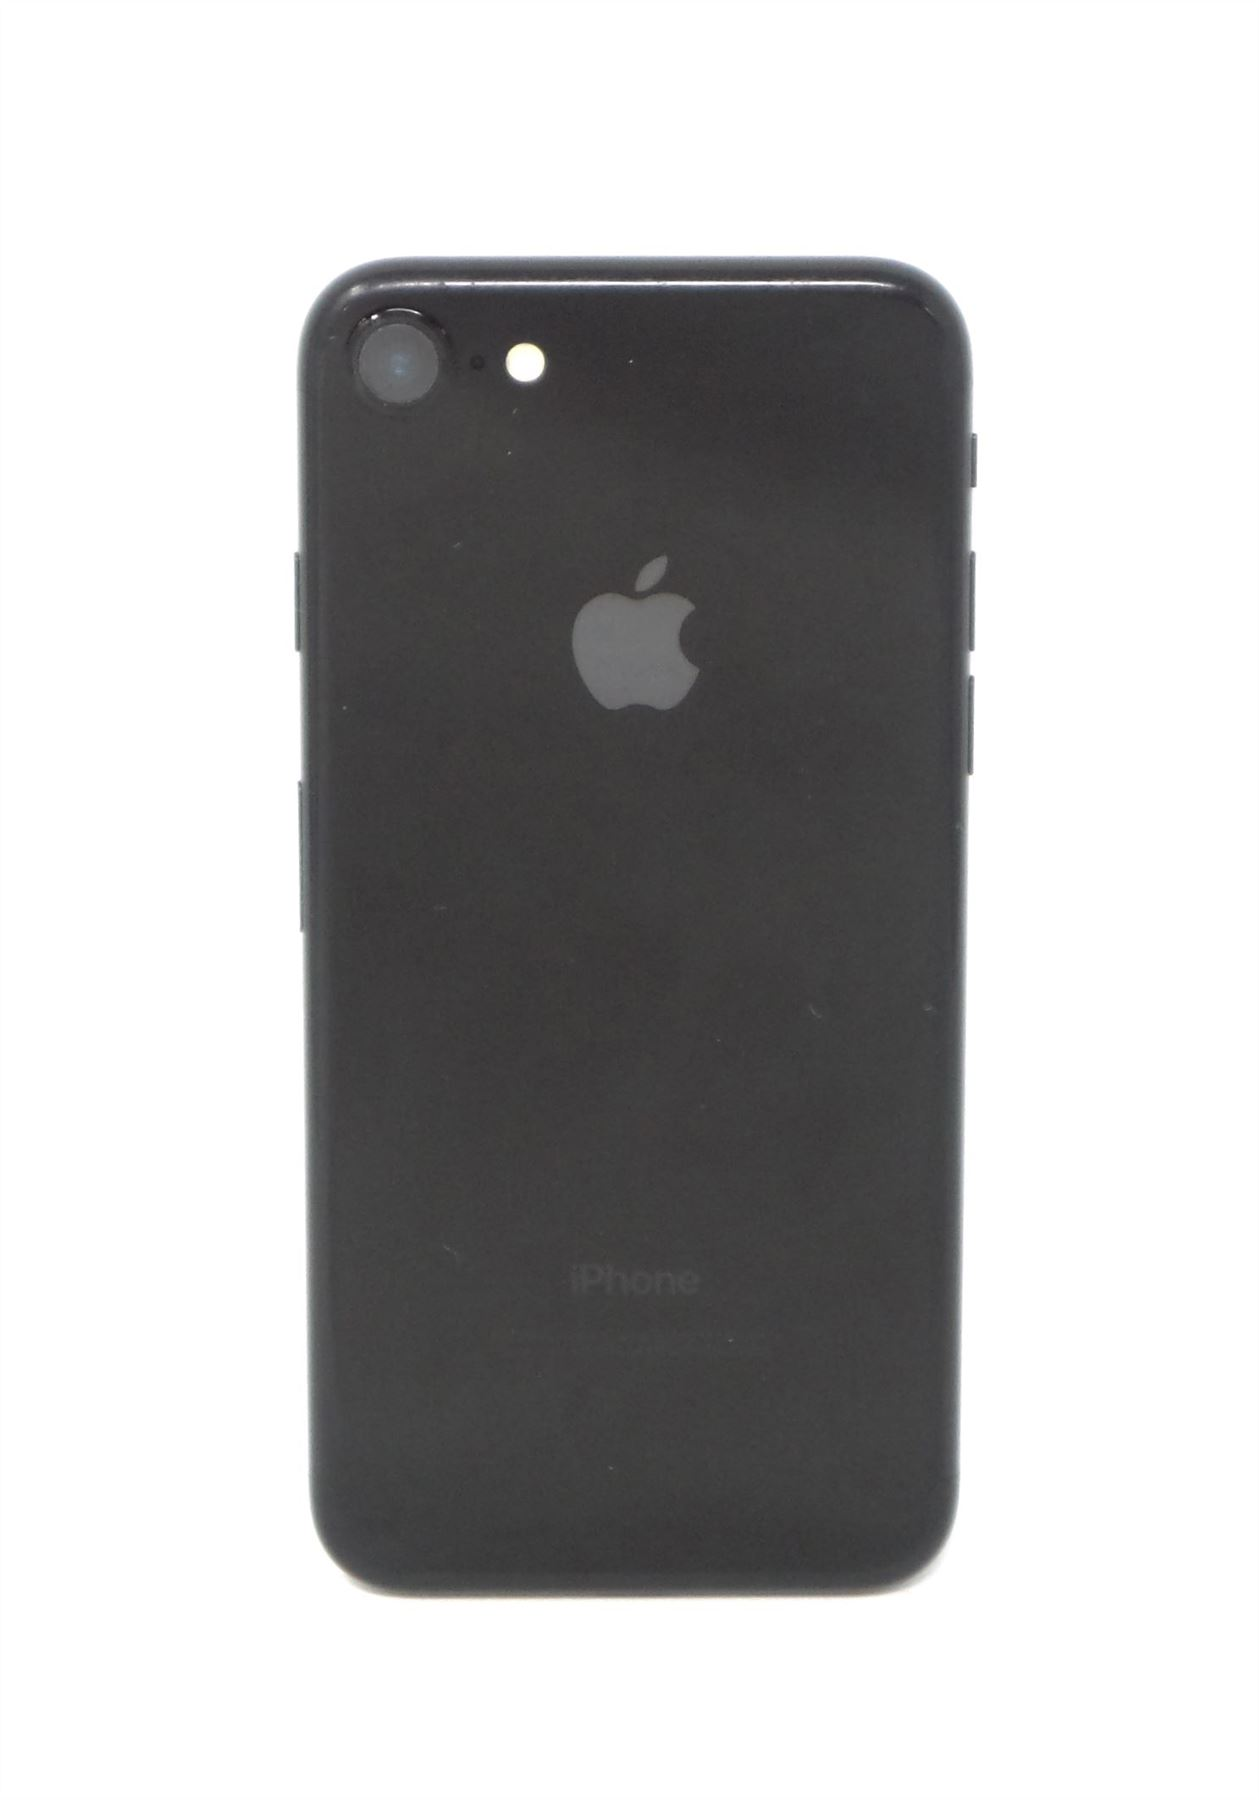 Apple-iPhone-7-Carrier-Option-AT-amp-T-T-Mobile-Unlocked-4G-32-128-256GB-All-Colors thumbnail 13